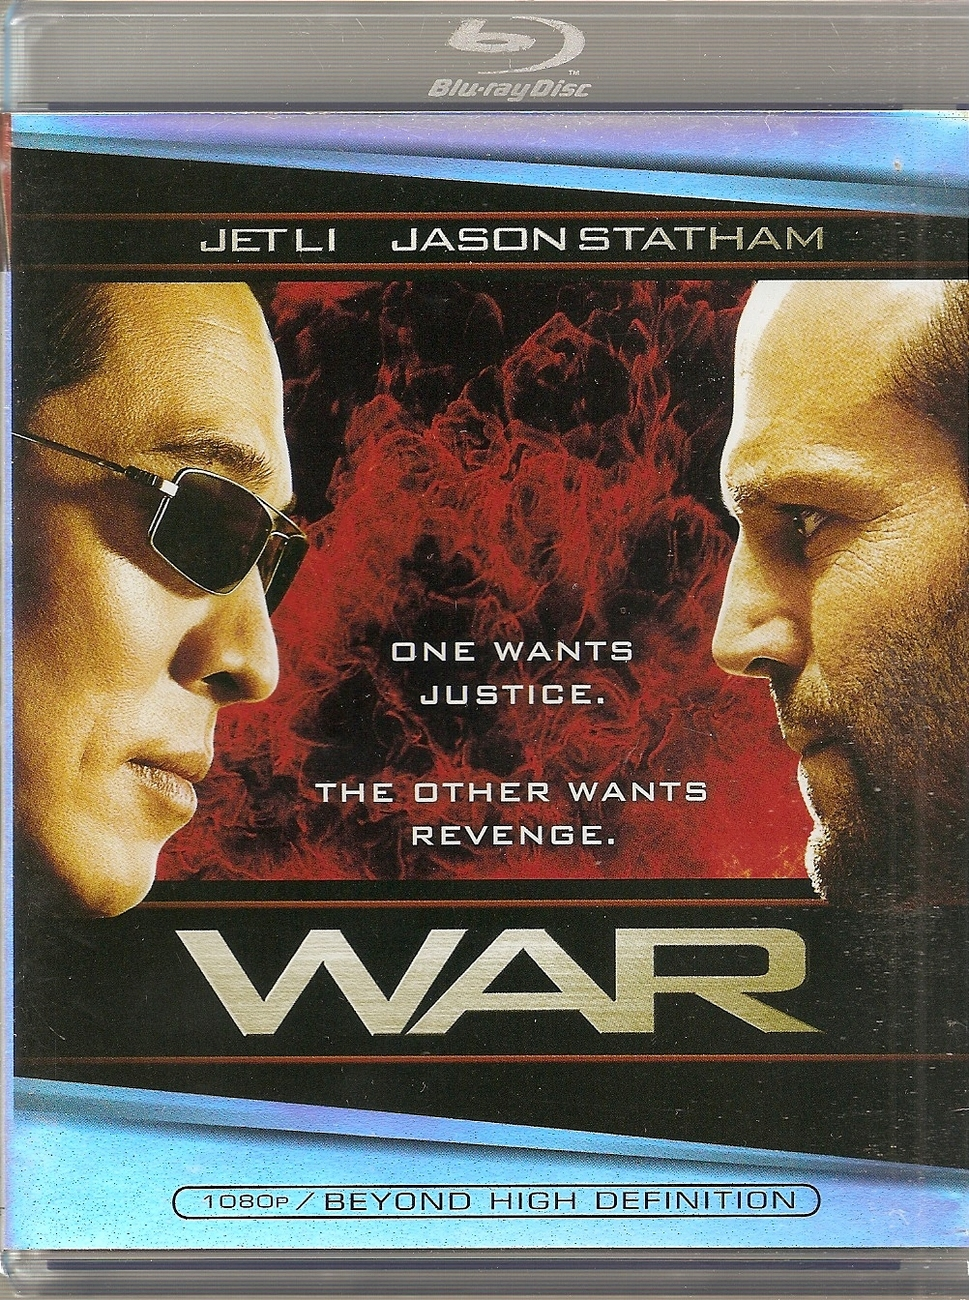 War [Blu-ray] directed by Phillip Atwell featuring Jet Li, J